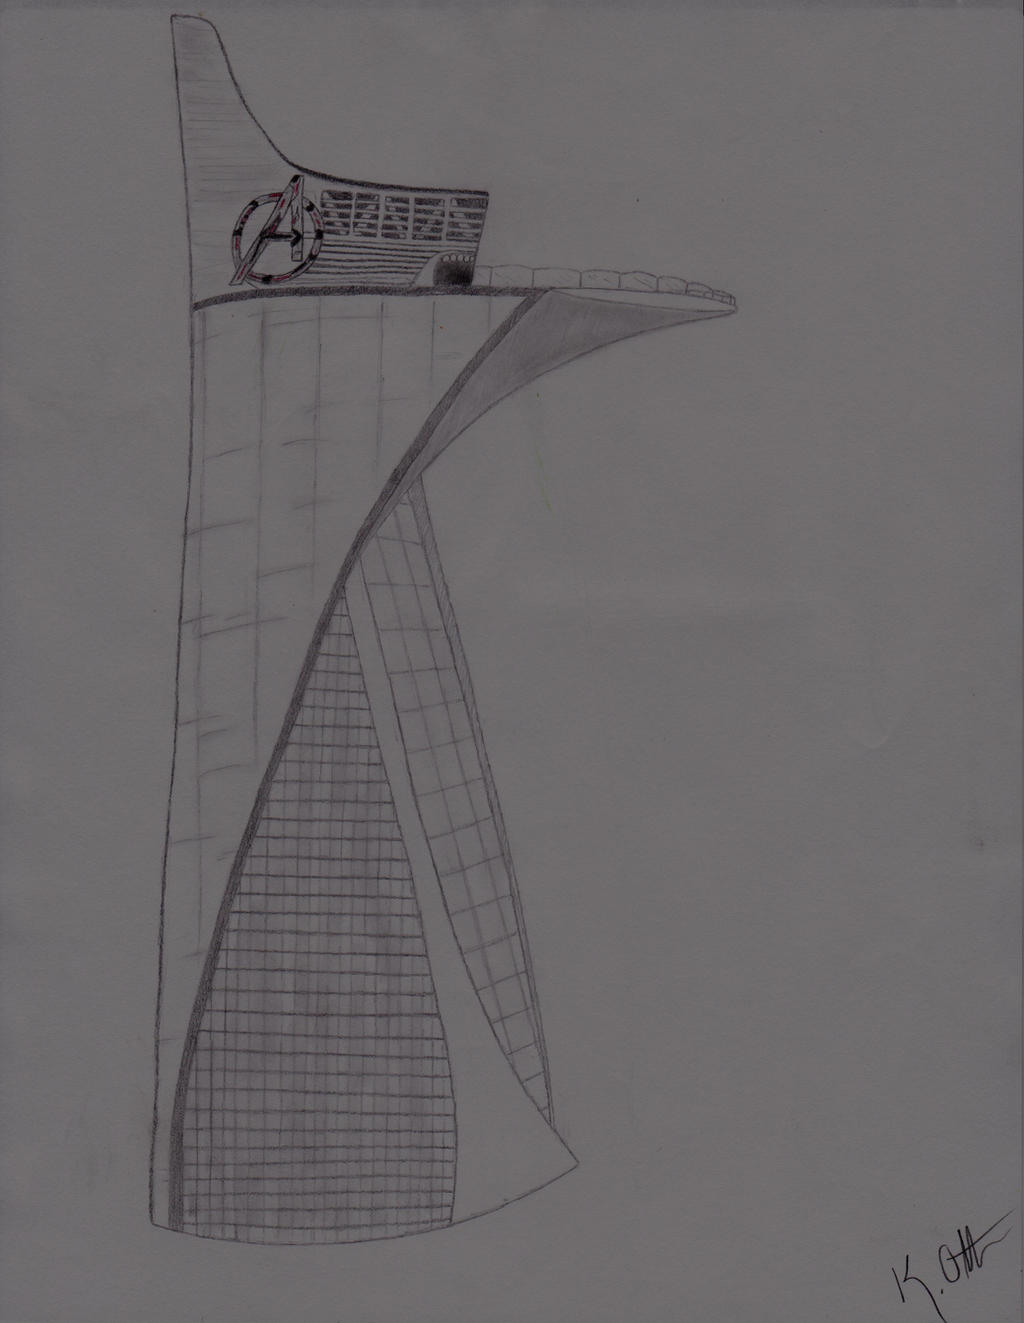 Avengers Tower By X-HuntersWolves-x On DeviantArt